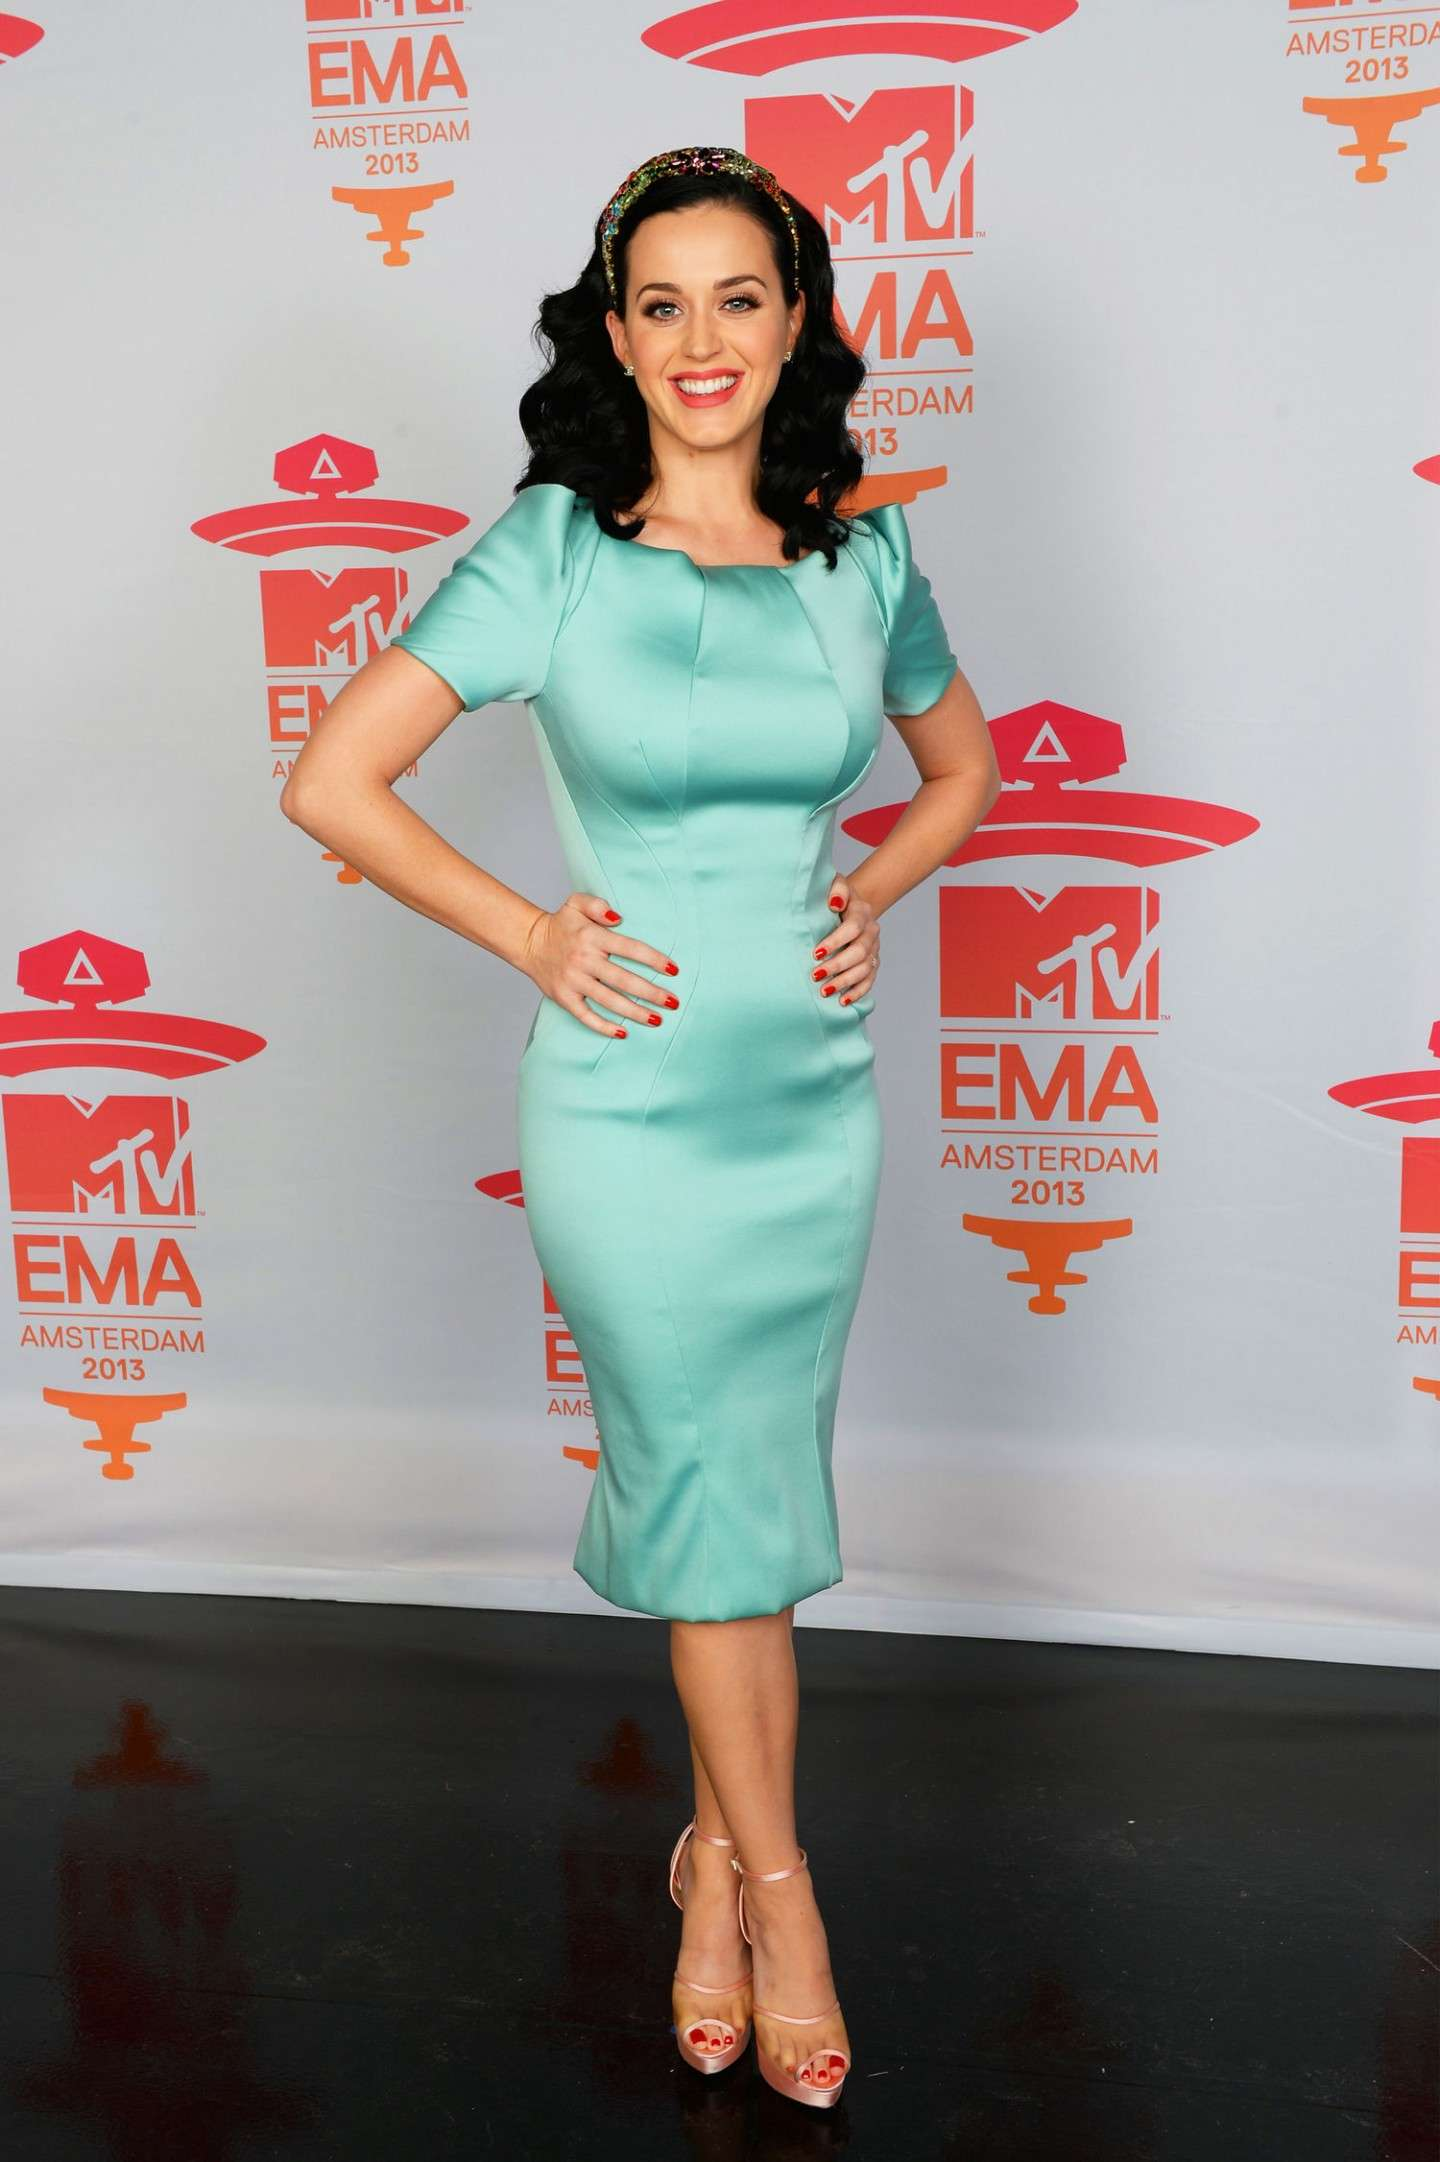 Katy Perry agli EMA 2013